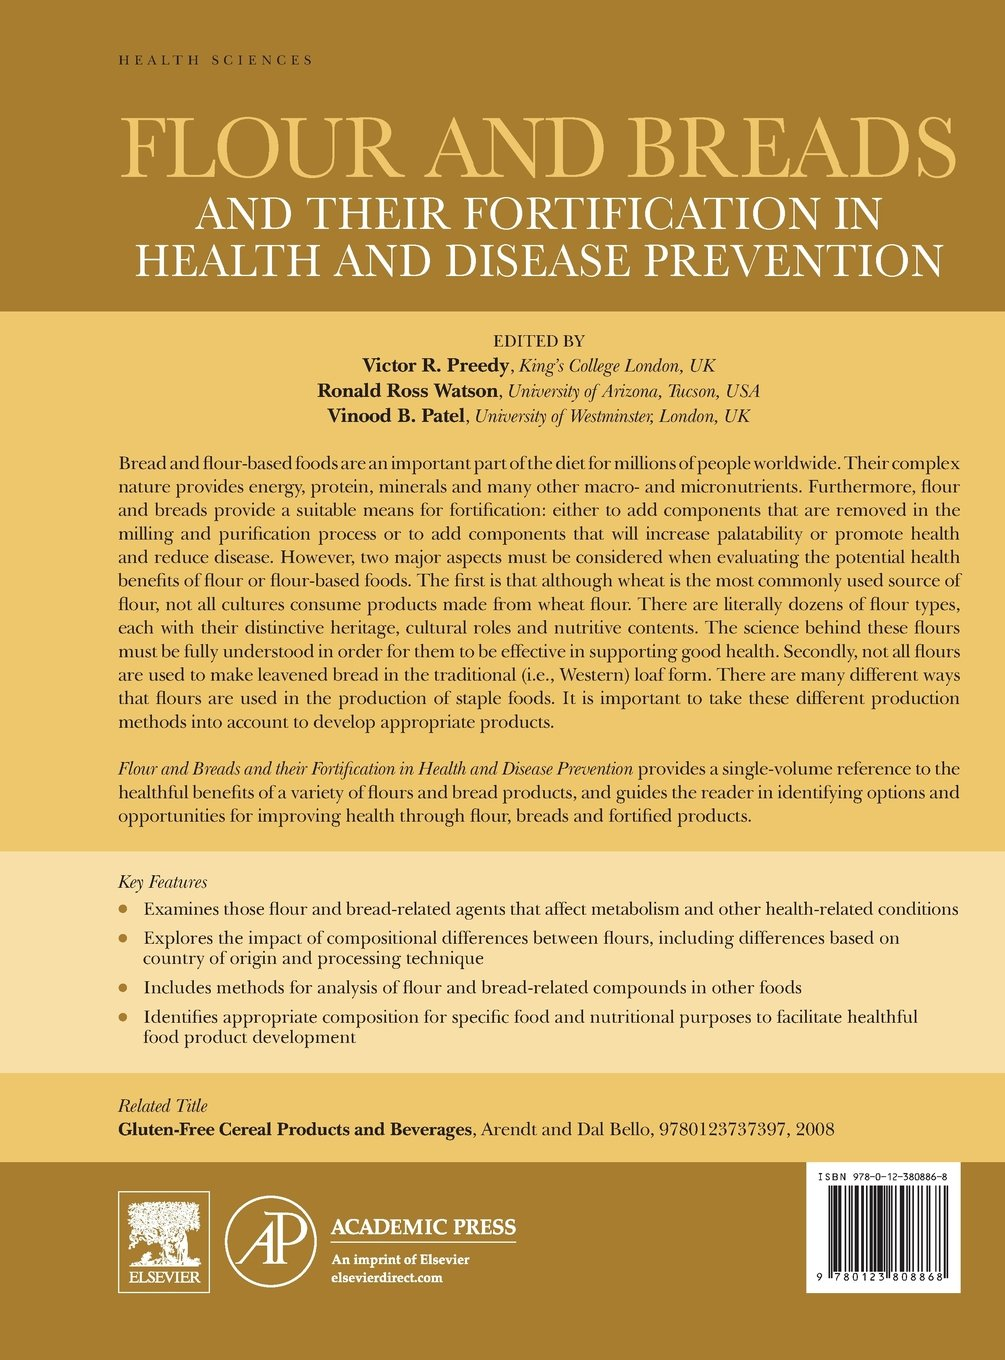 Buy Flour and Breads and their Fortification in Health and Disease  Prevention Book Online at Low Prices in India | Flour and Breads and their  Fortification ...